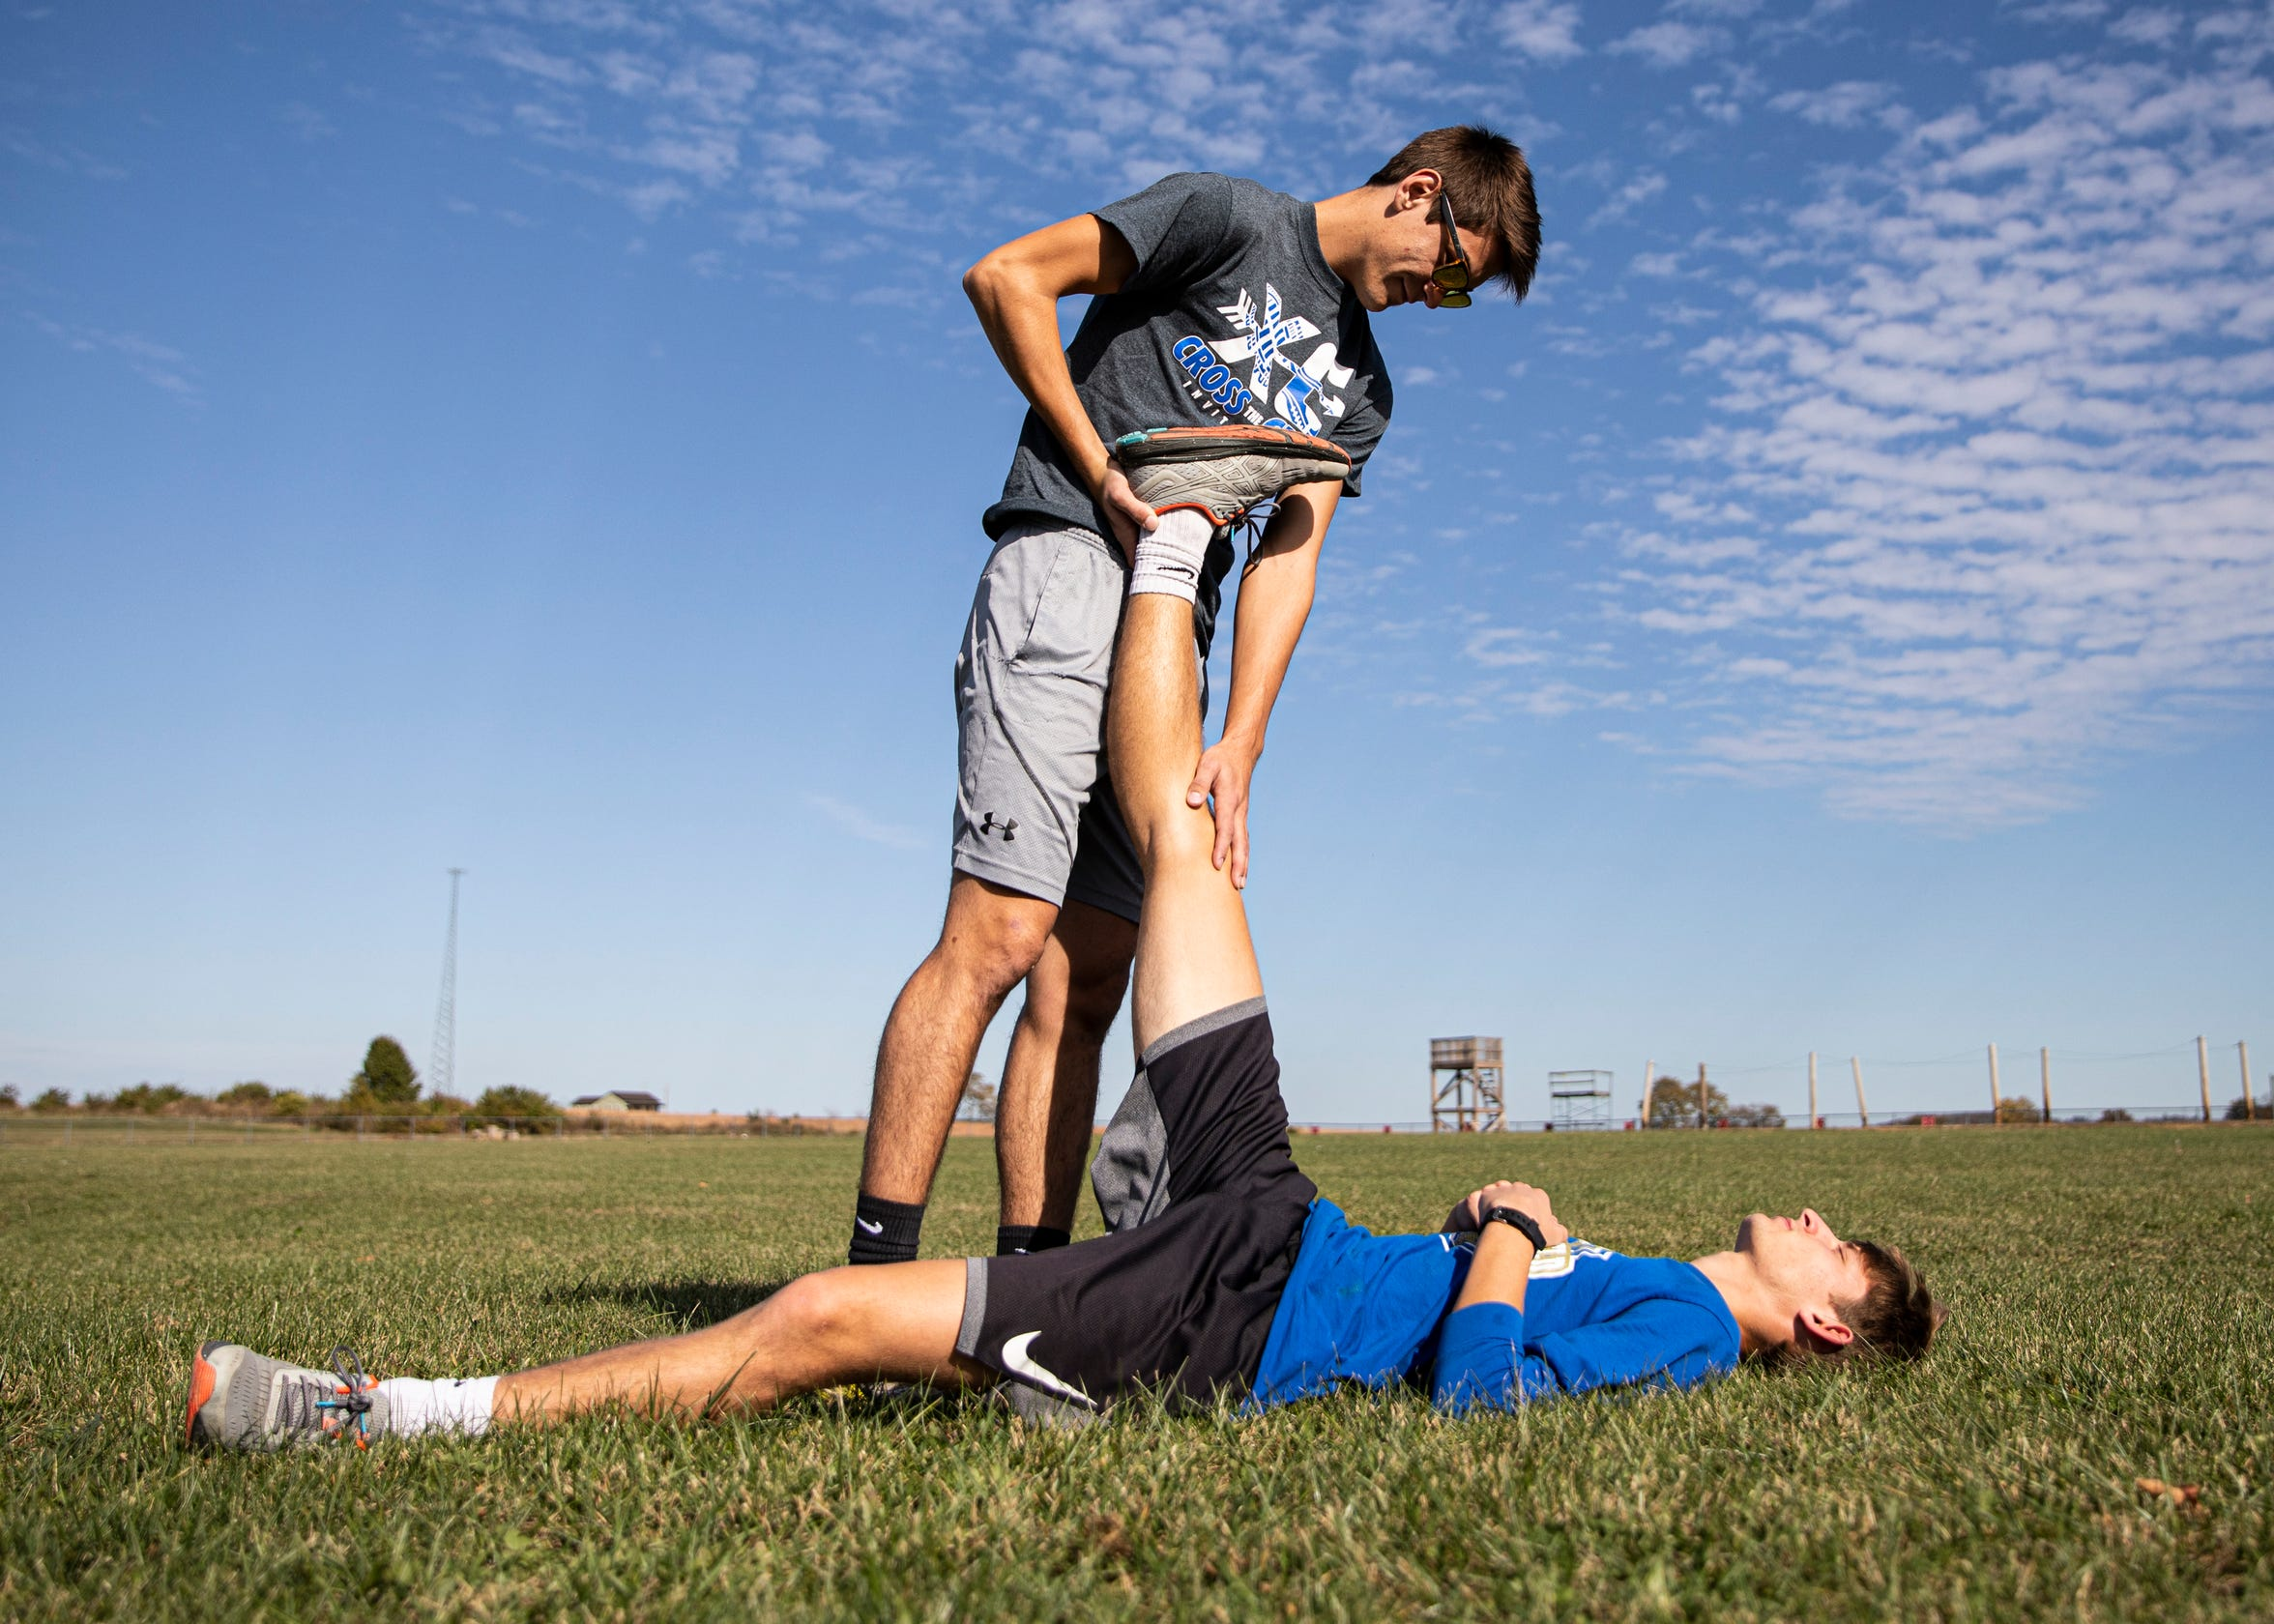 To help prevent injury and loosen the muscles, senior Emmitt Cunningham helps stretch out fellow cross country senior Noah Kanniard before Kanniard participates in a practice run after school in Frankfort, Ohio.